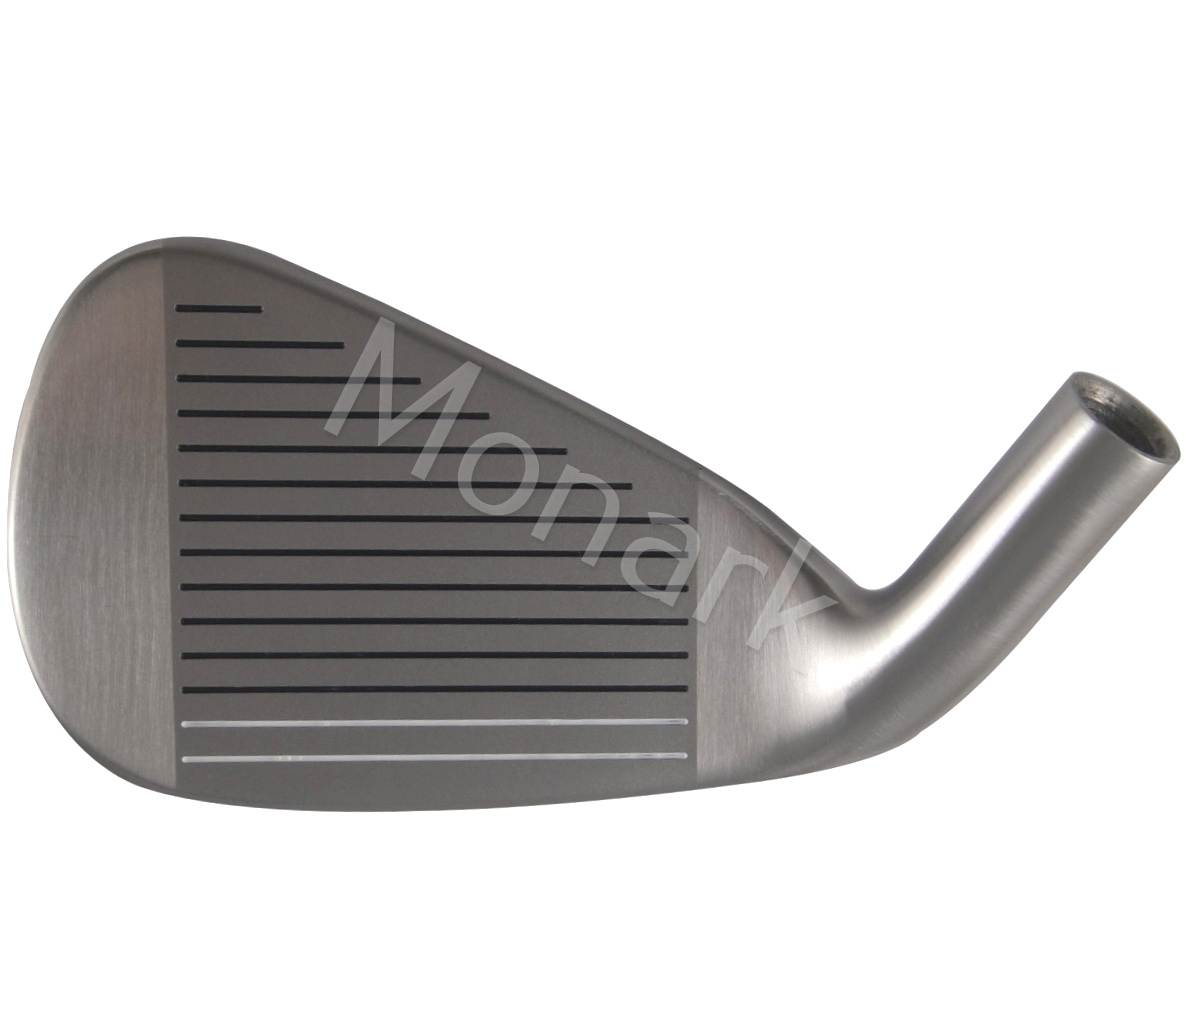 Custom-Built Turbo Power Ipak Wedge